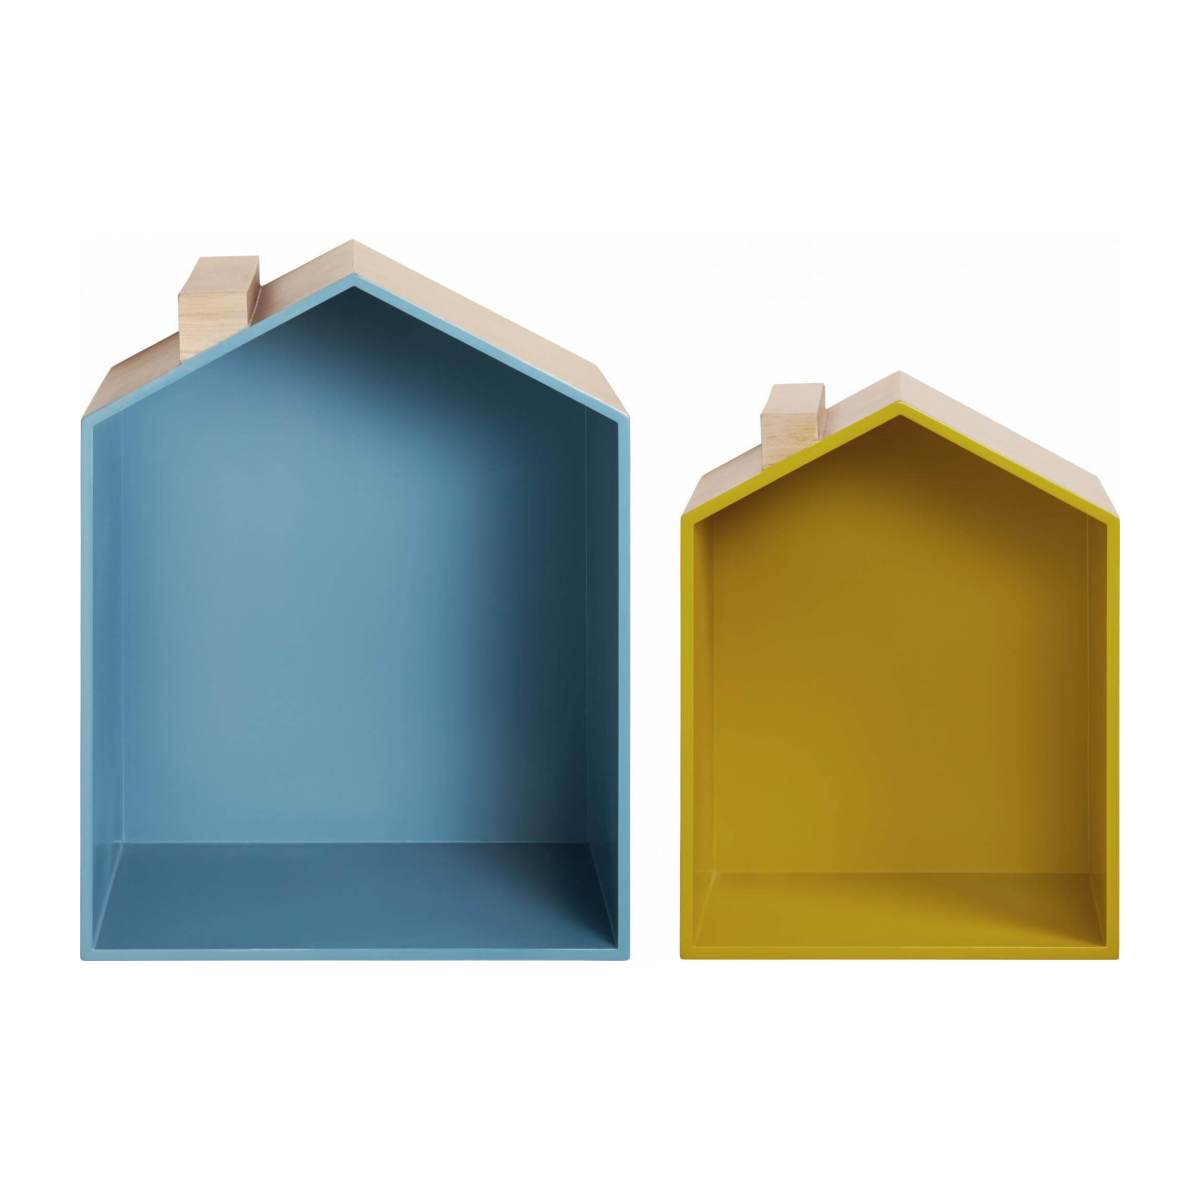 Set of 2 shelves made of oak, natural, grey-blue and yellow n°2